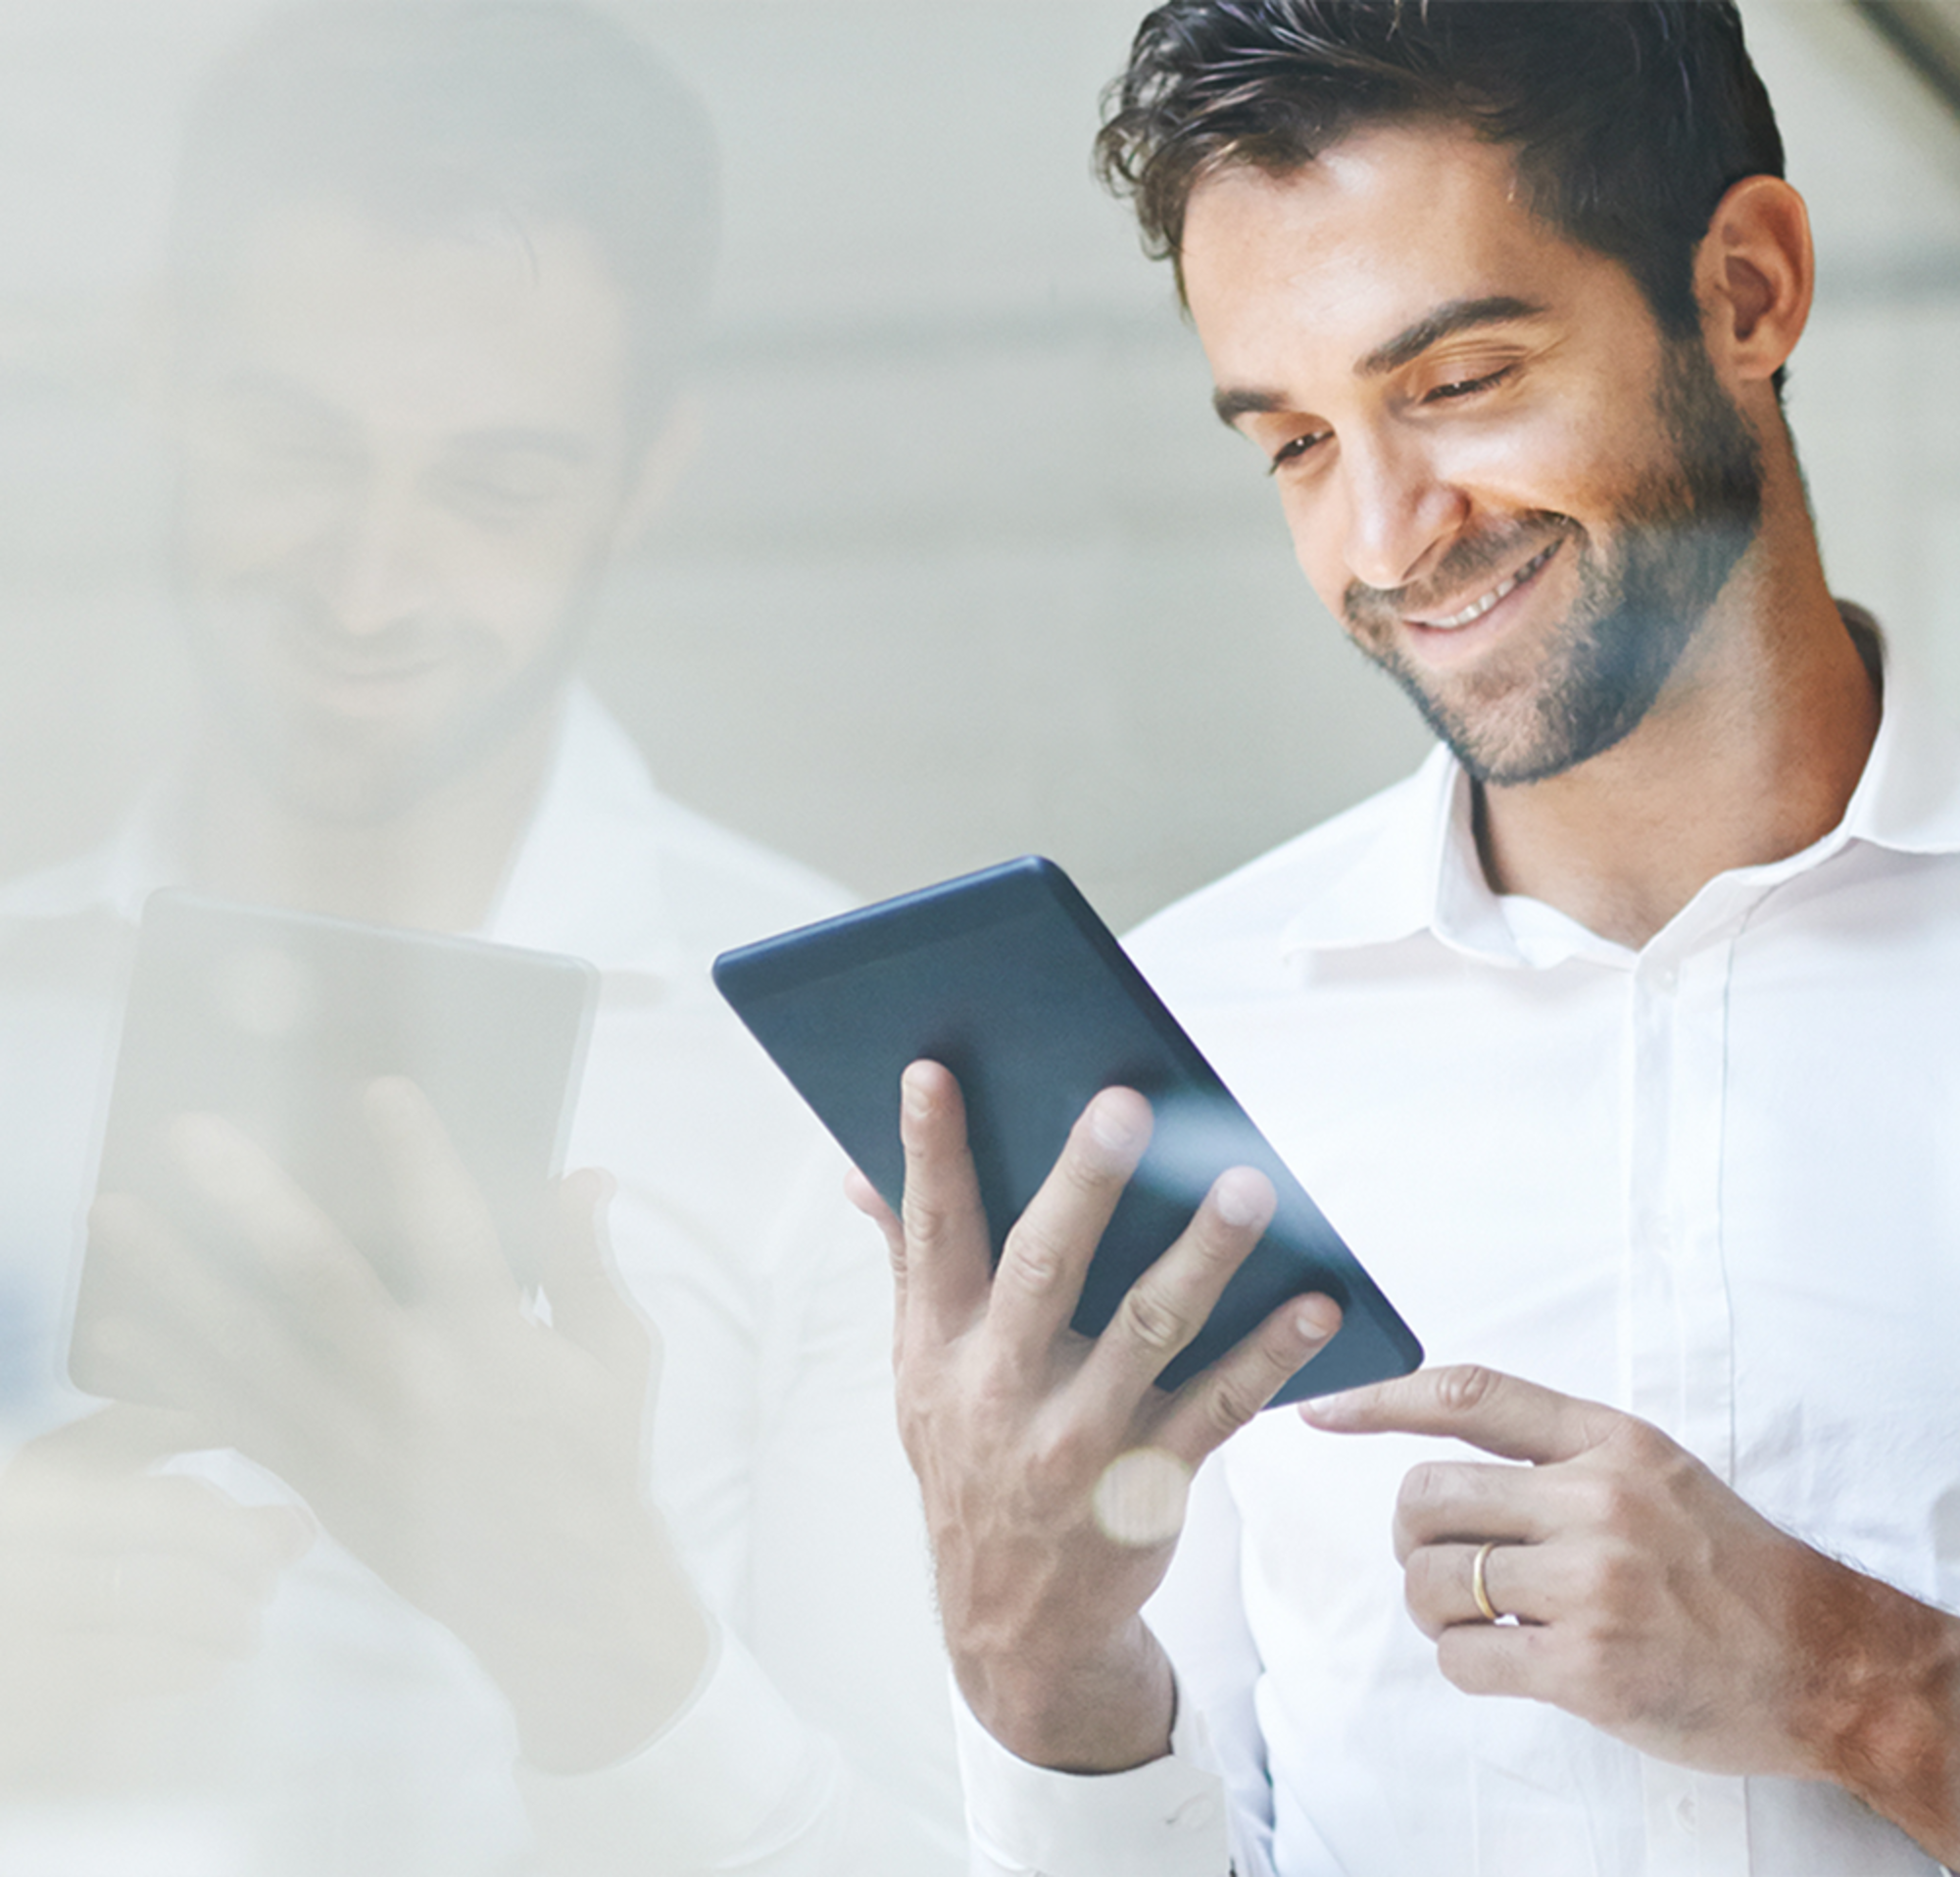 Learn all about electronic signatures